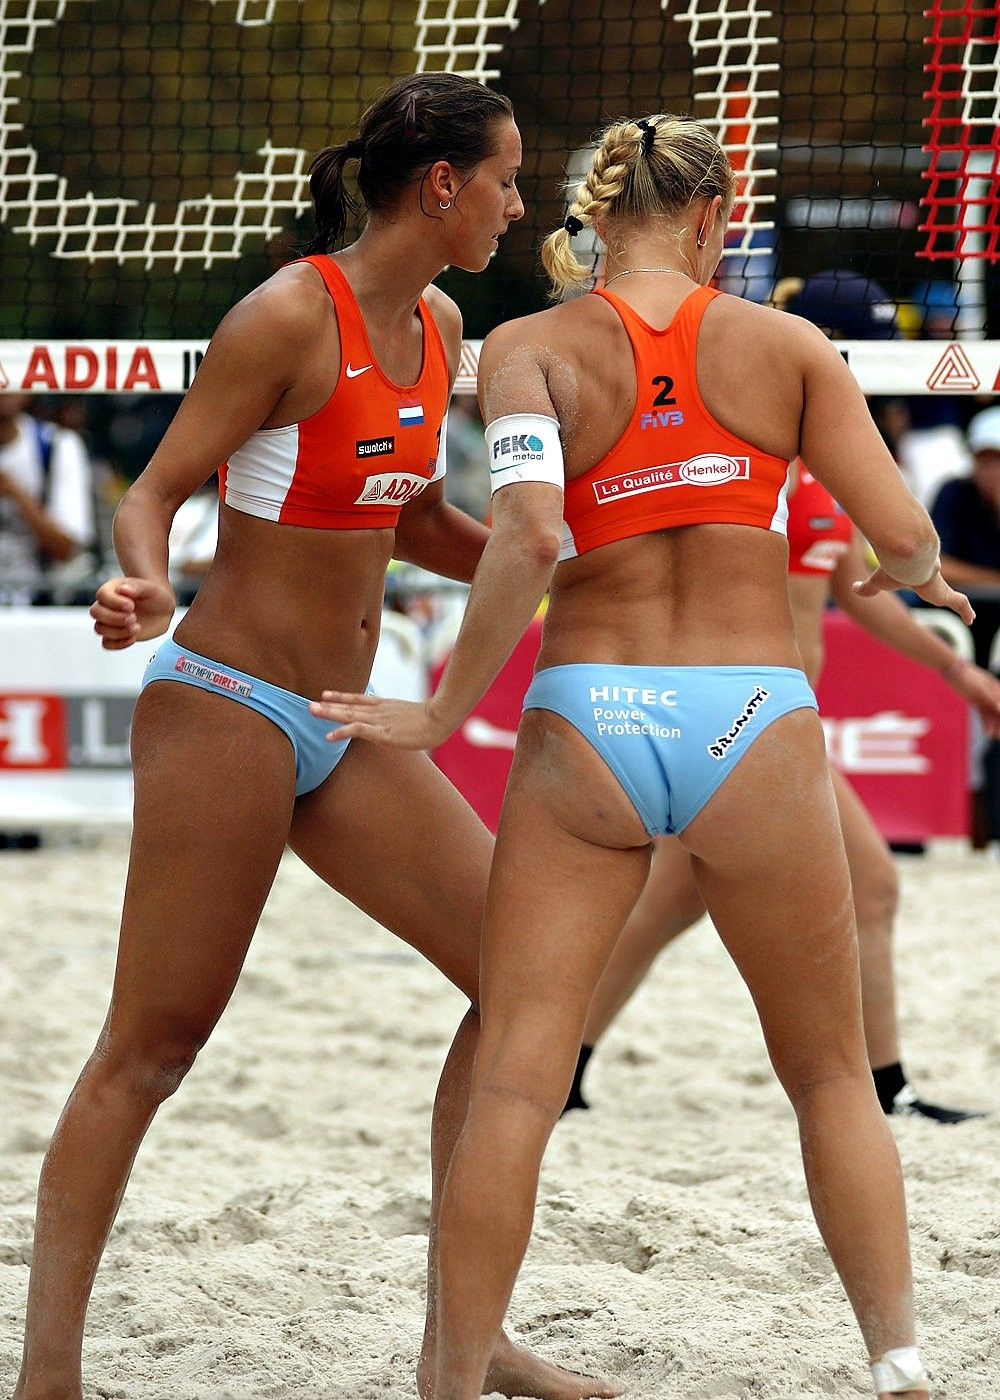 Sorry, that Naked beach volleyball girls agree, the